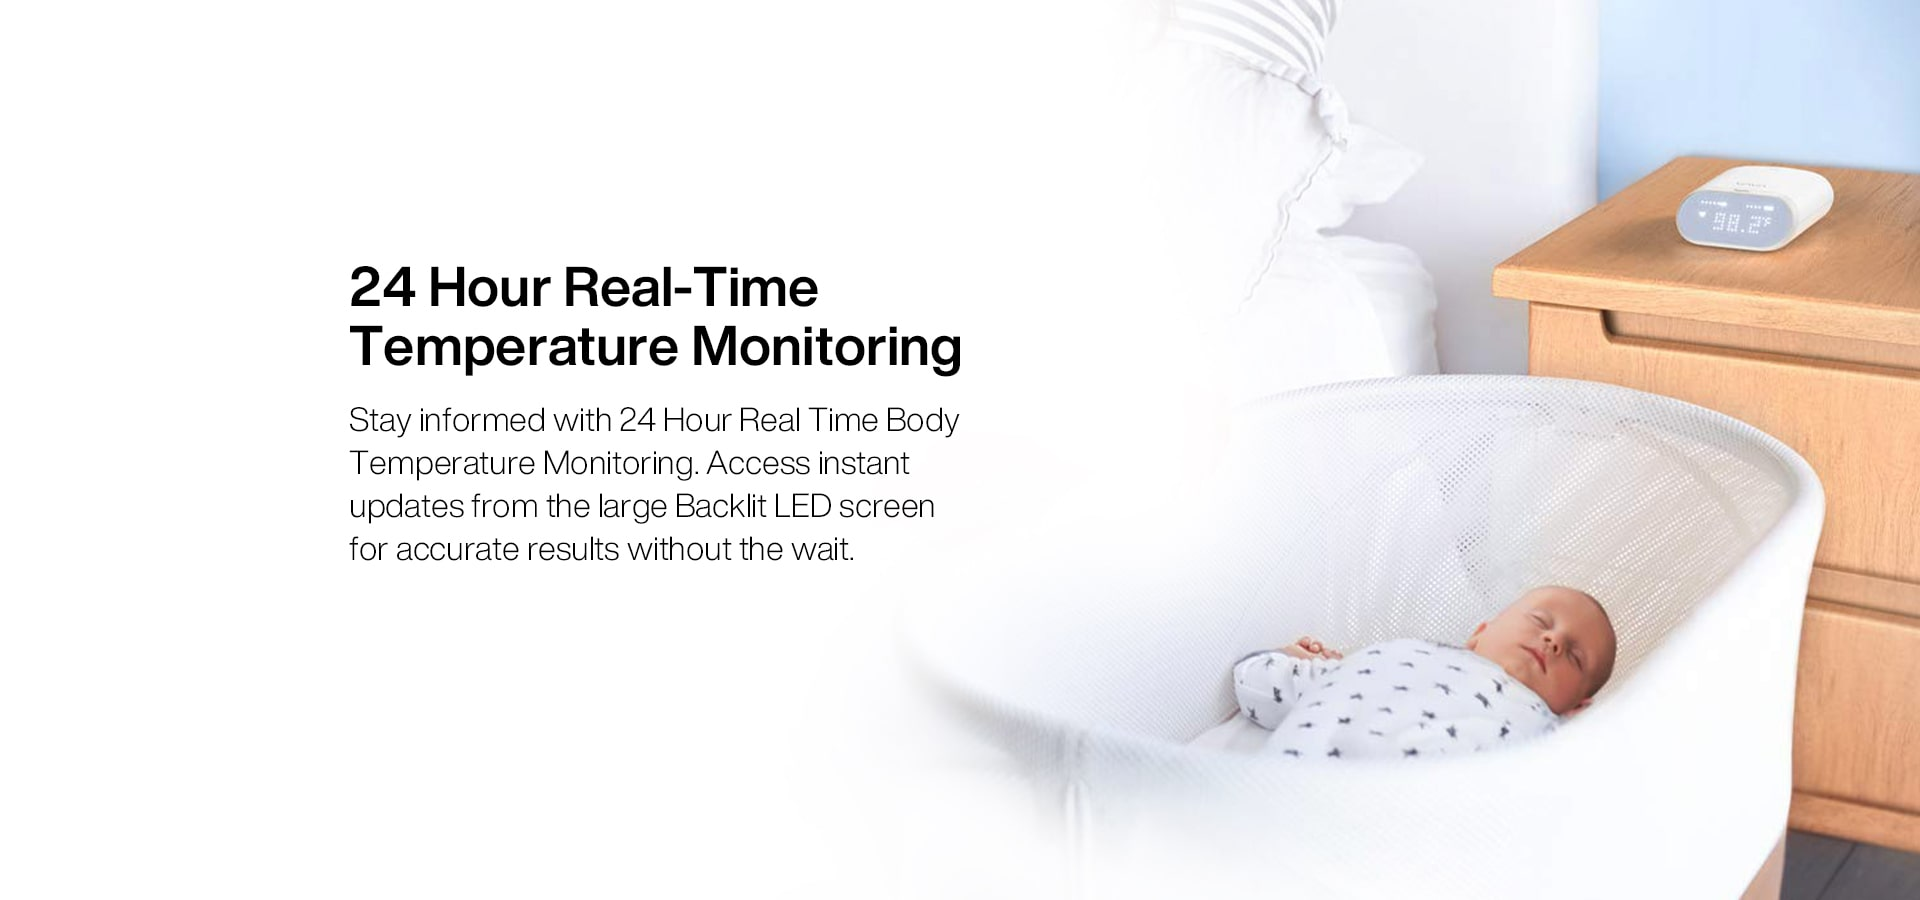 24 hour real-time temperature monitoring